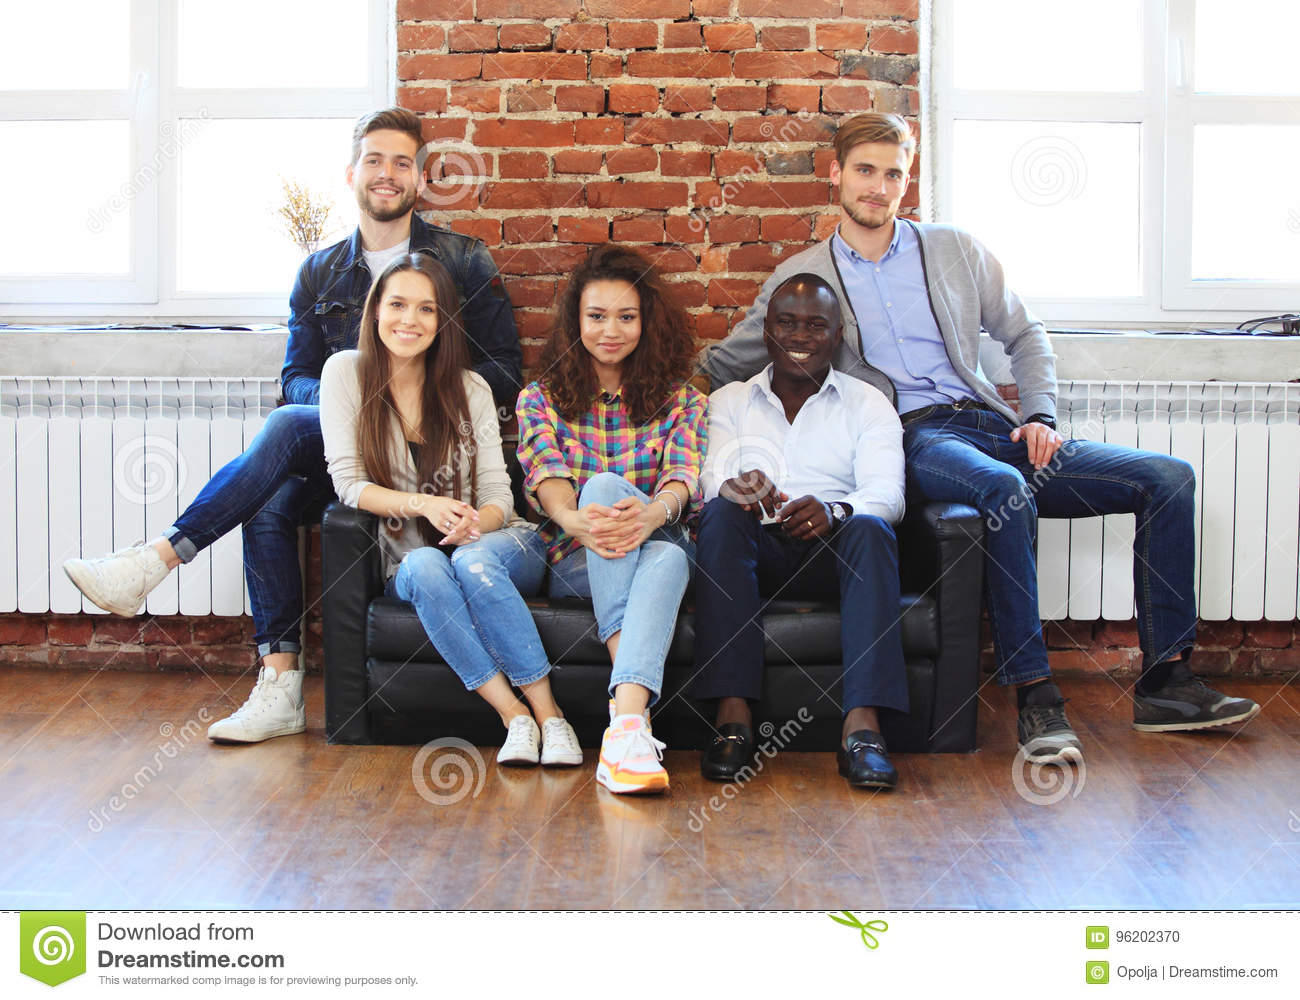 Portrait of creative business team sitting together and laughing. Multiracial business people together at startup.